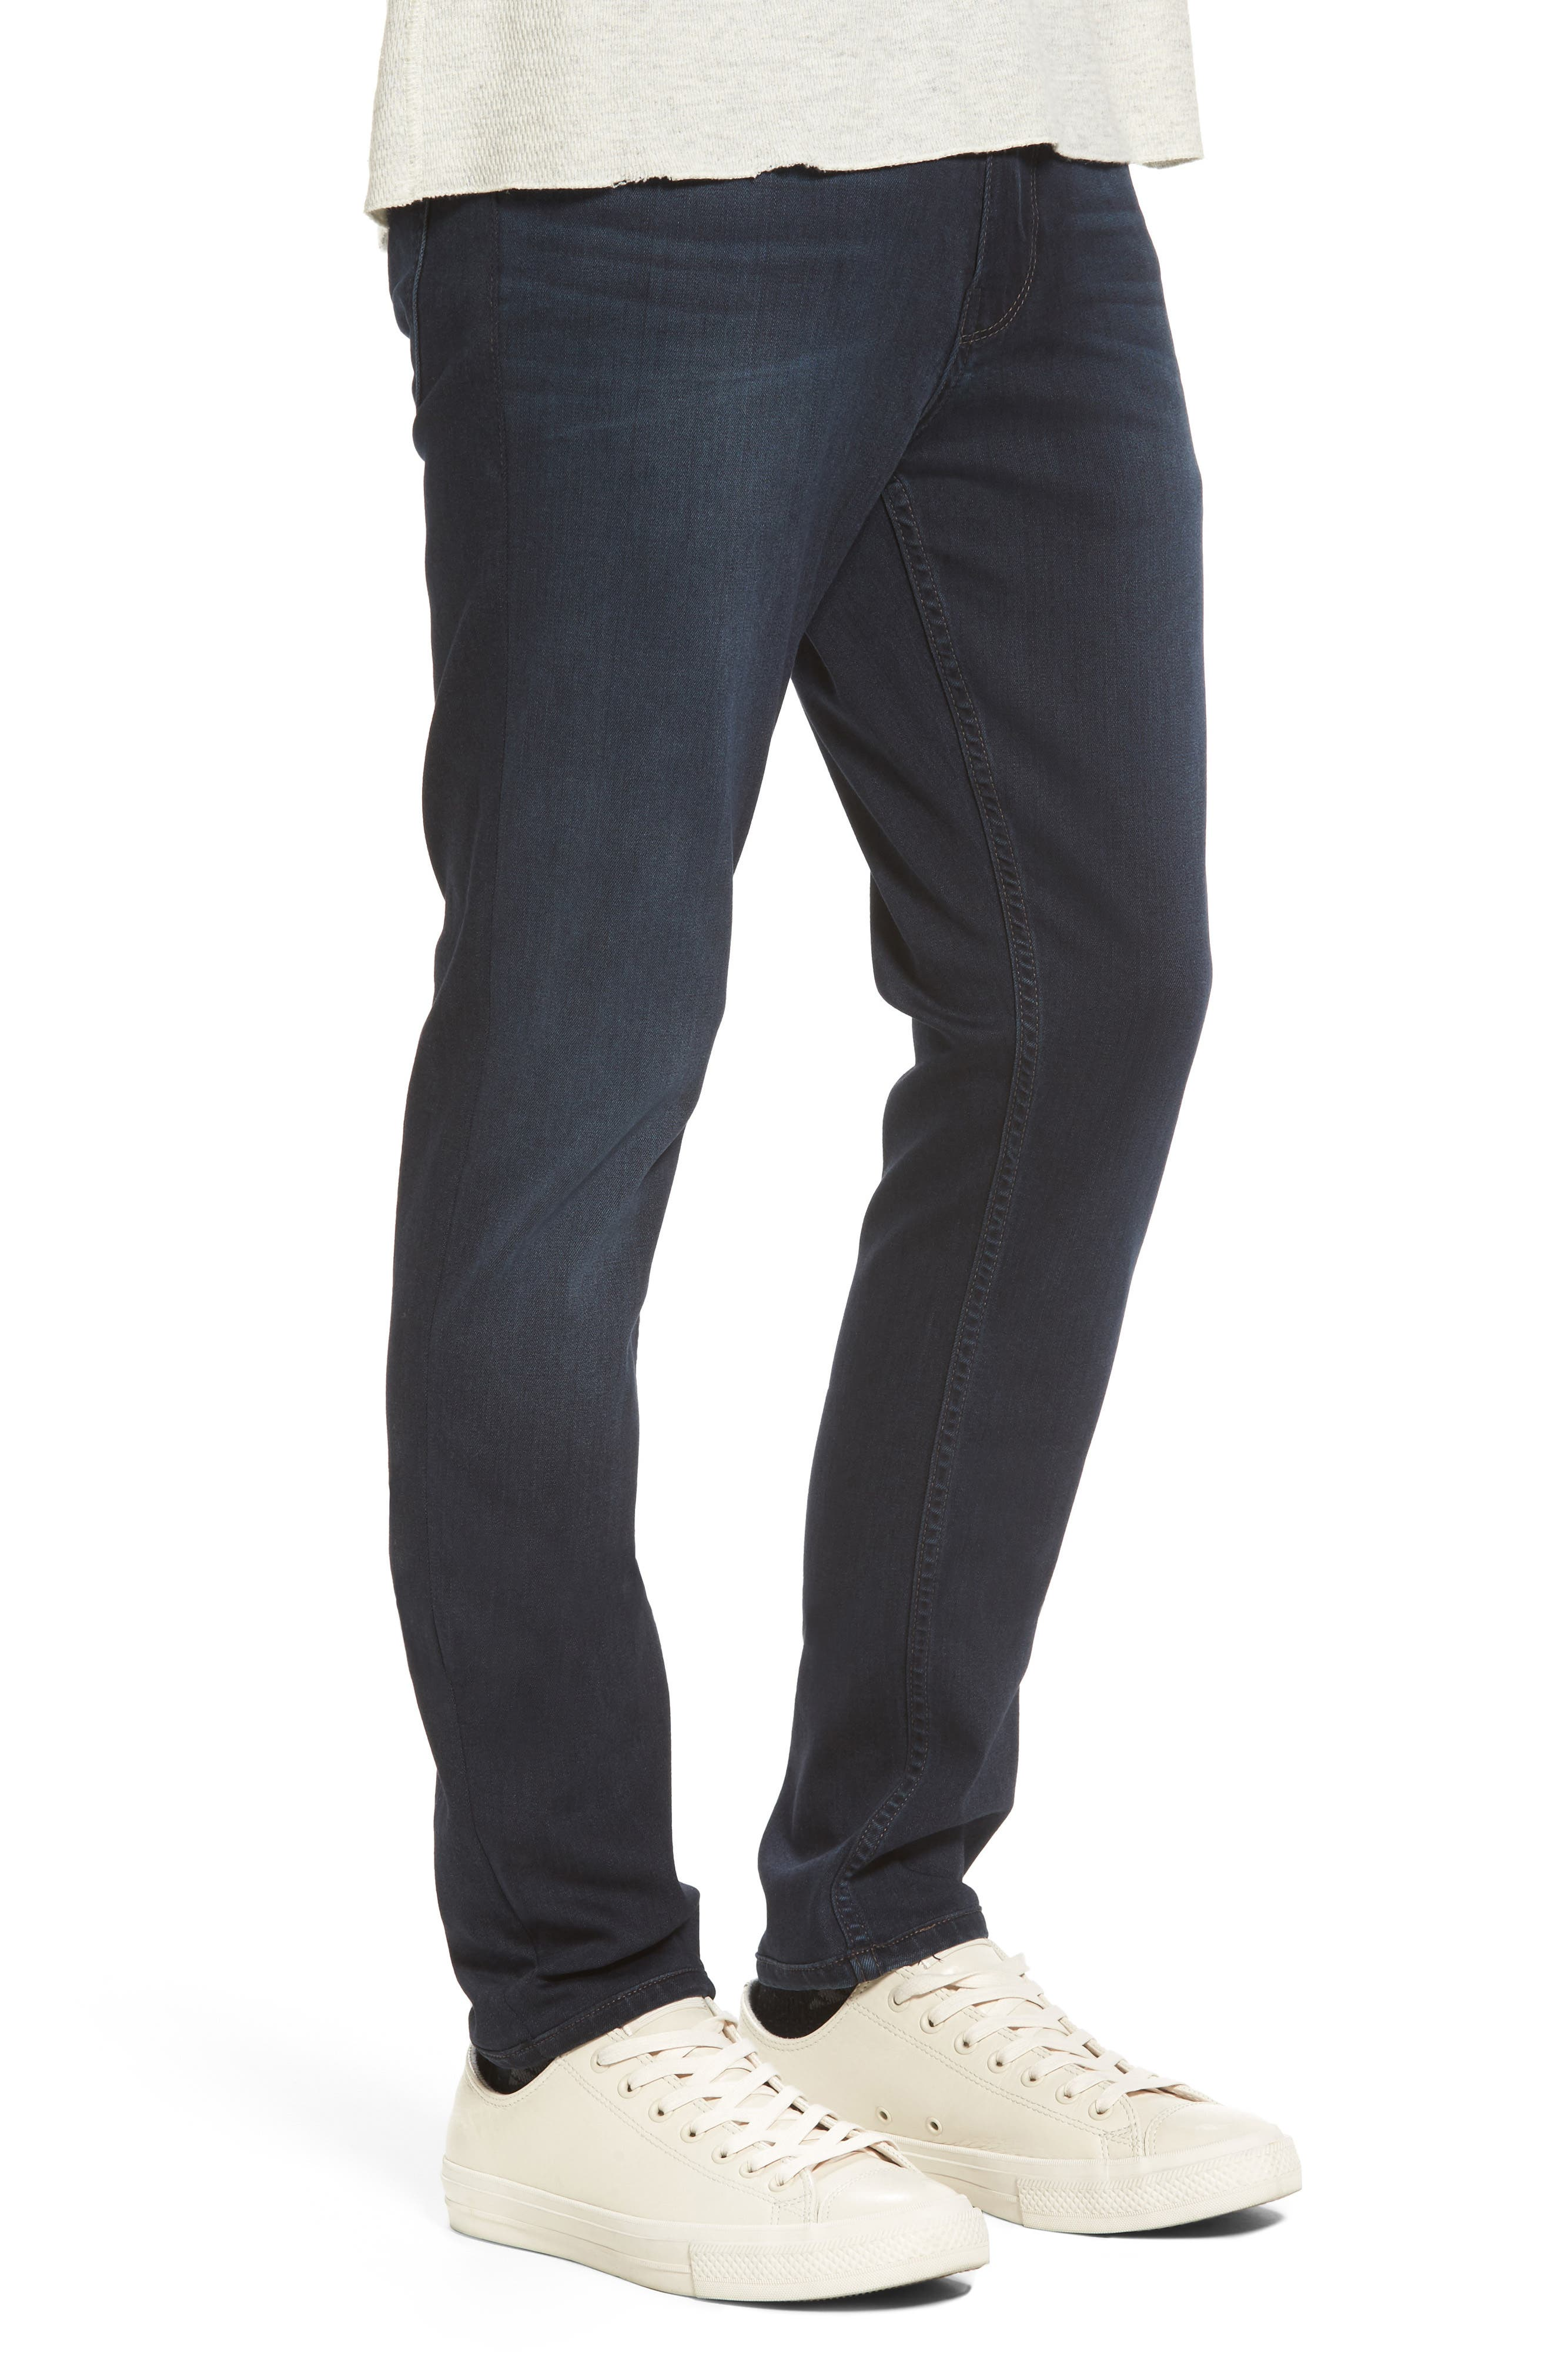 Croft Skinny Fit Jeans,                             Alternate thumbnail 3, color,                             Cecil